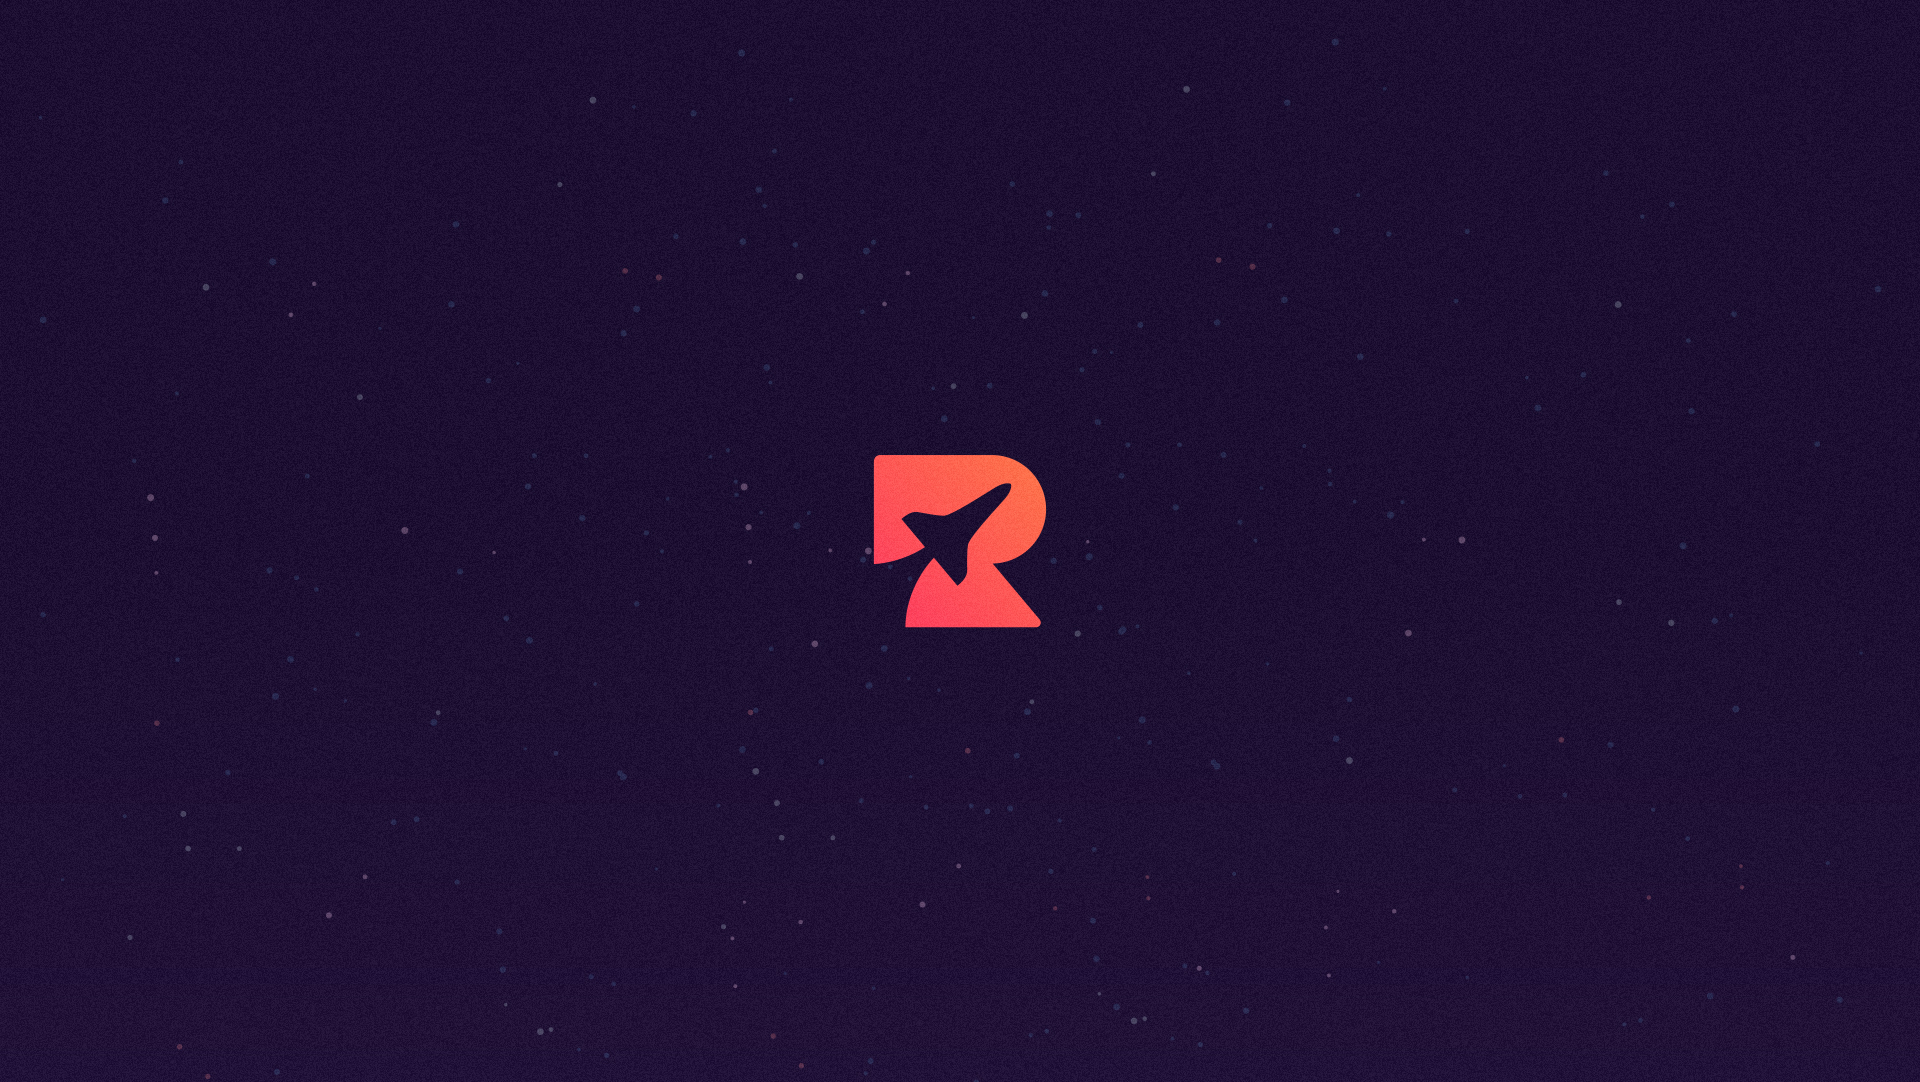 Visual Identity for Rocket Alive by Vitor Linhares